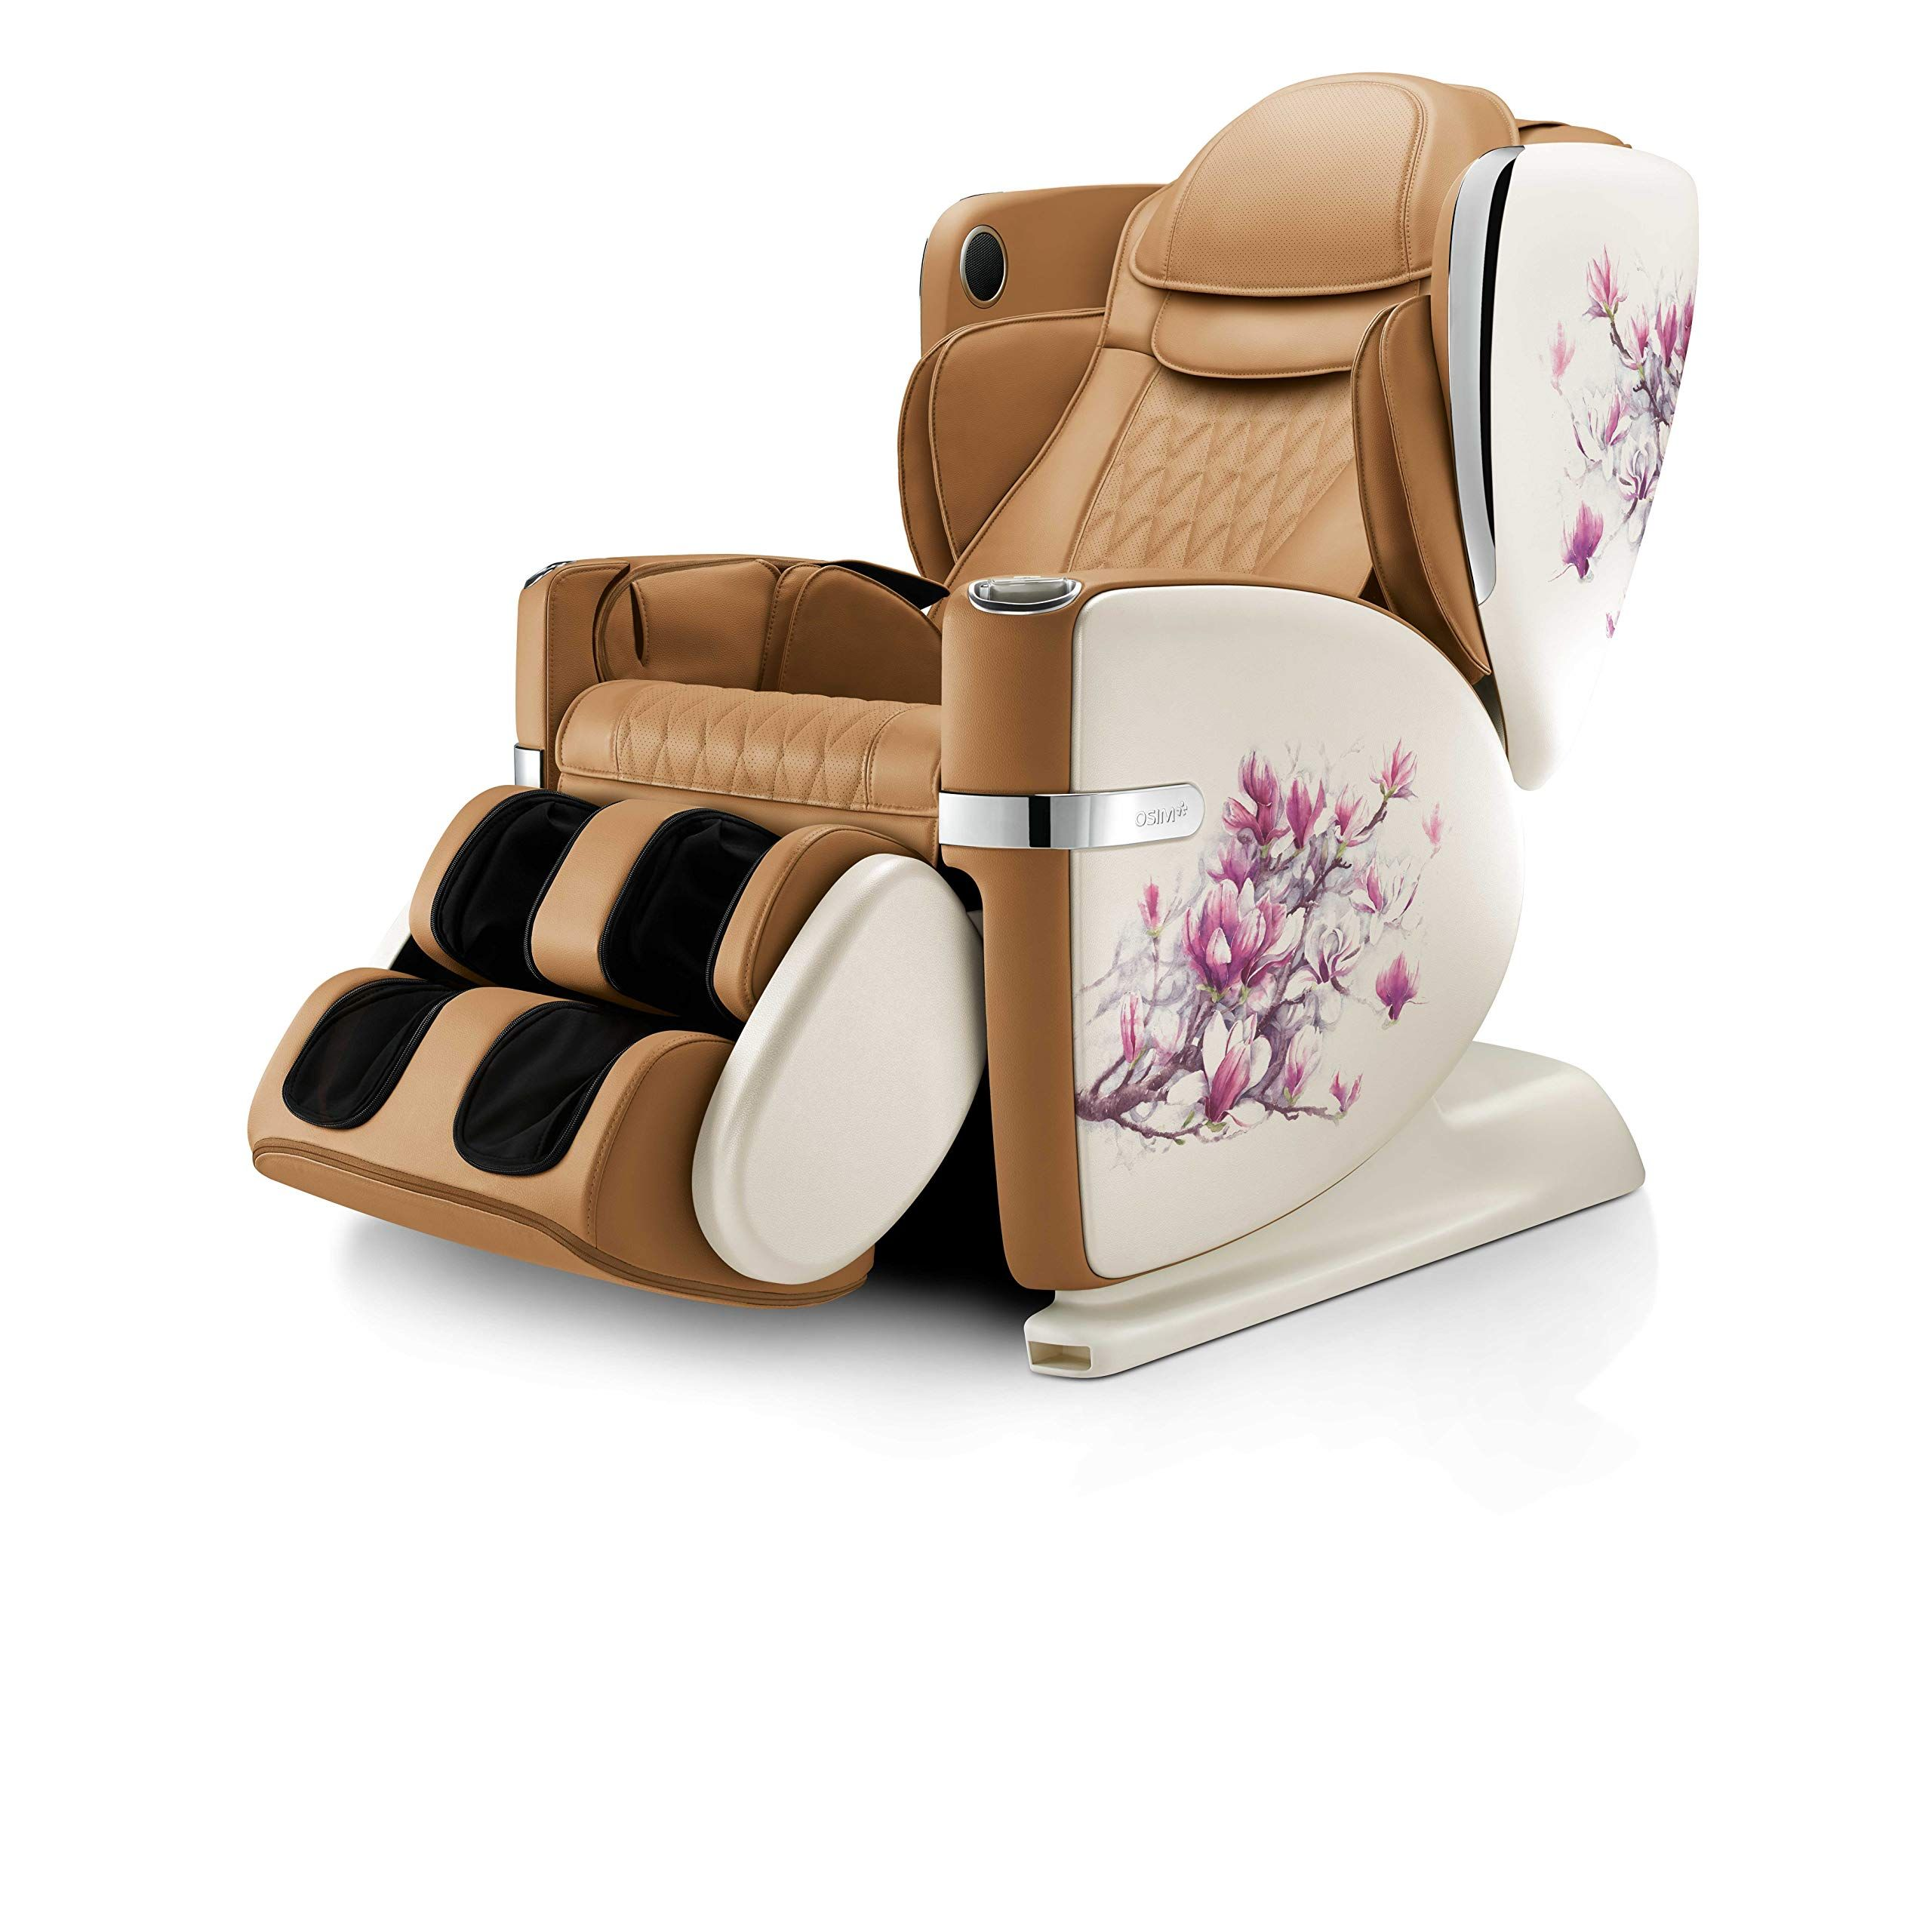 Ulove2 Full Body Massager Chair 4 Hand Zero Gravity Massage Chair With Patented 720 Roller Balls S Track L Track Mass Full Body Massage Massage Calf Roller